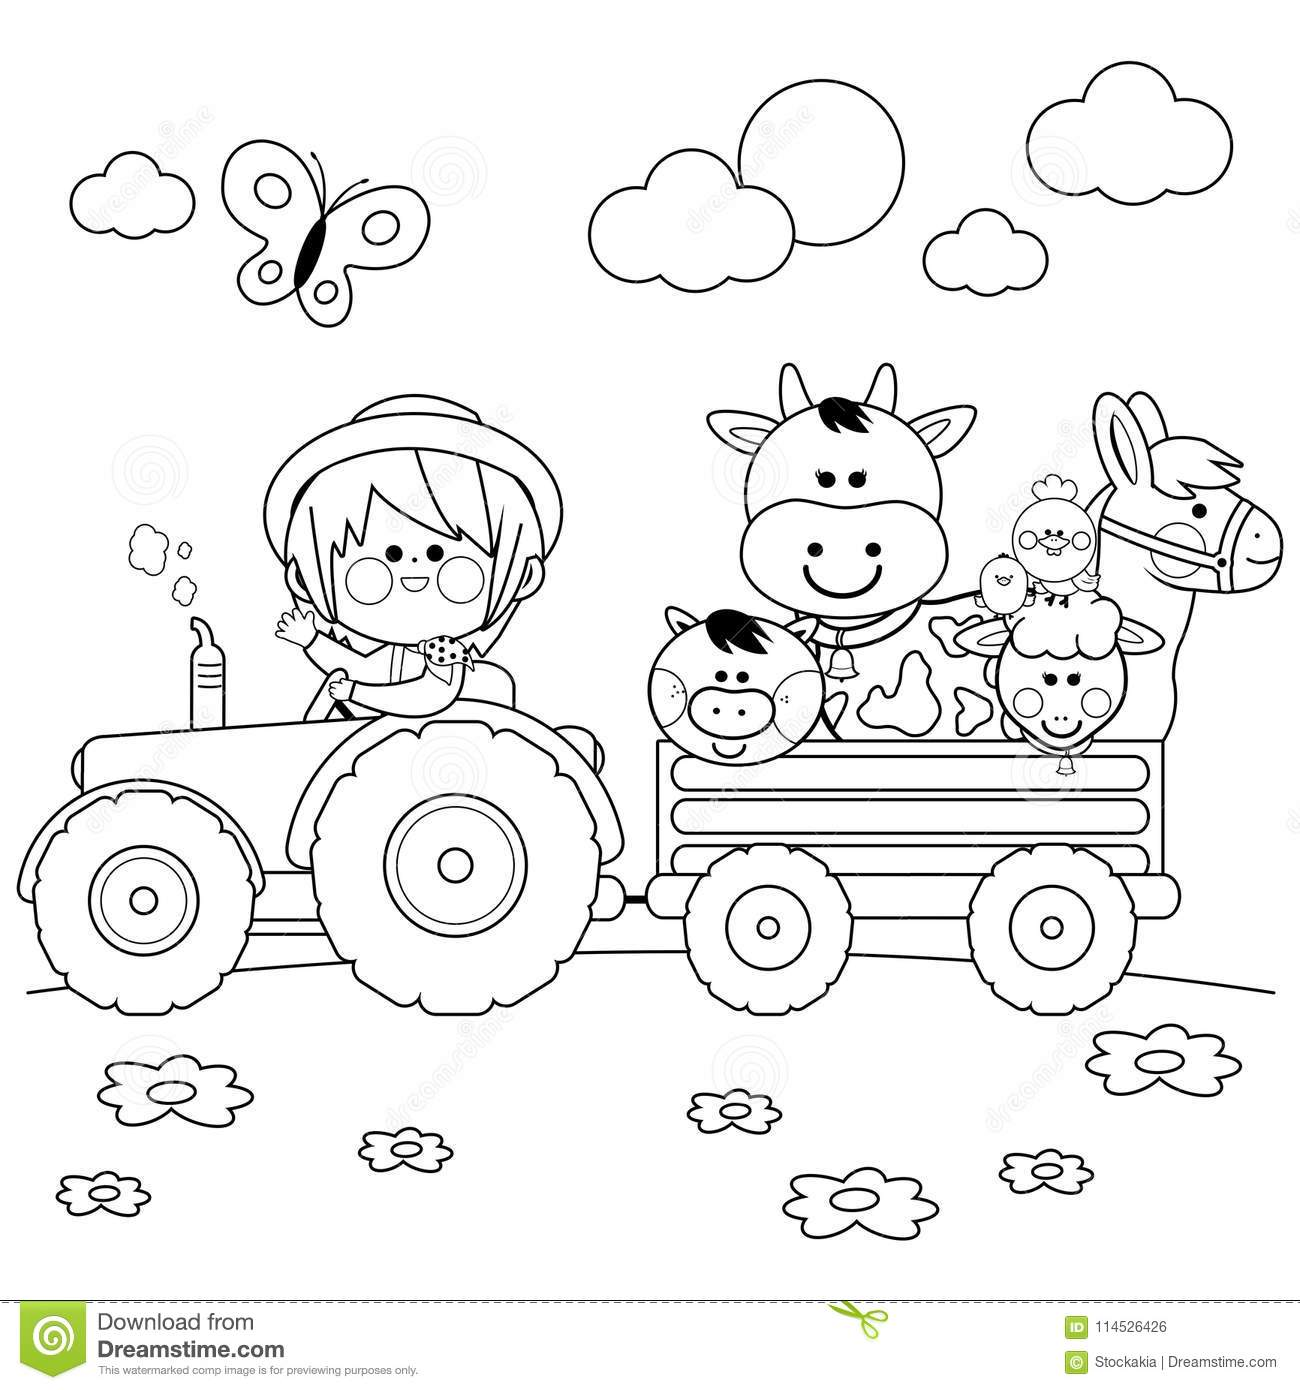 Download Farmer Boy Driving A Tractor And Carrying Farm Animals Black White Coloring Book